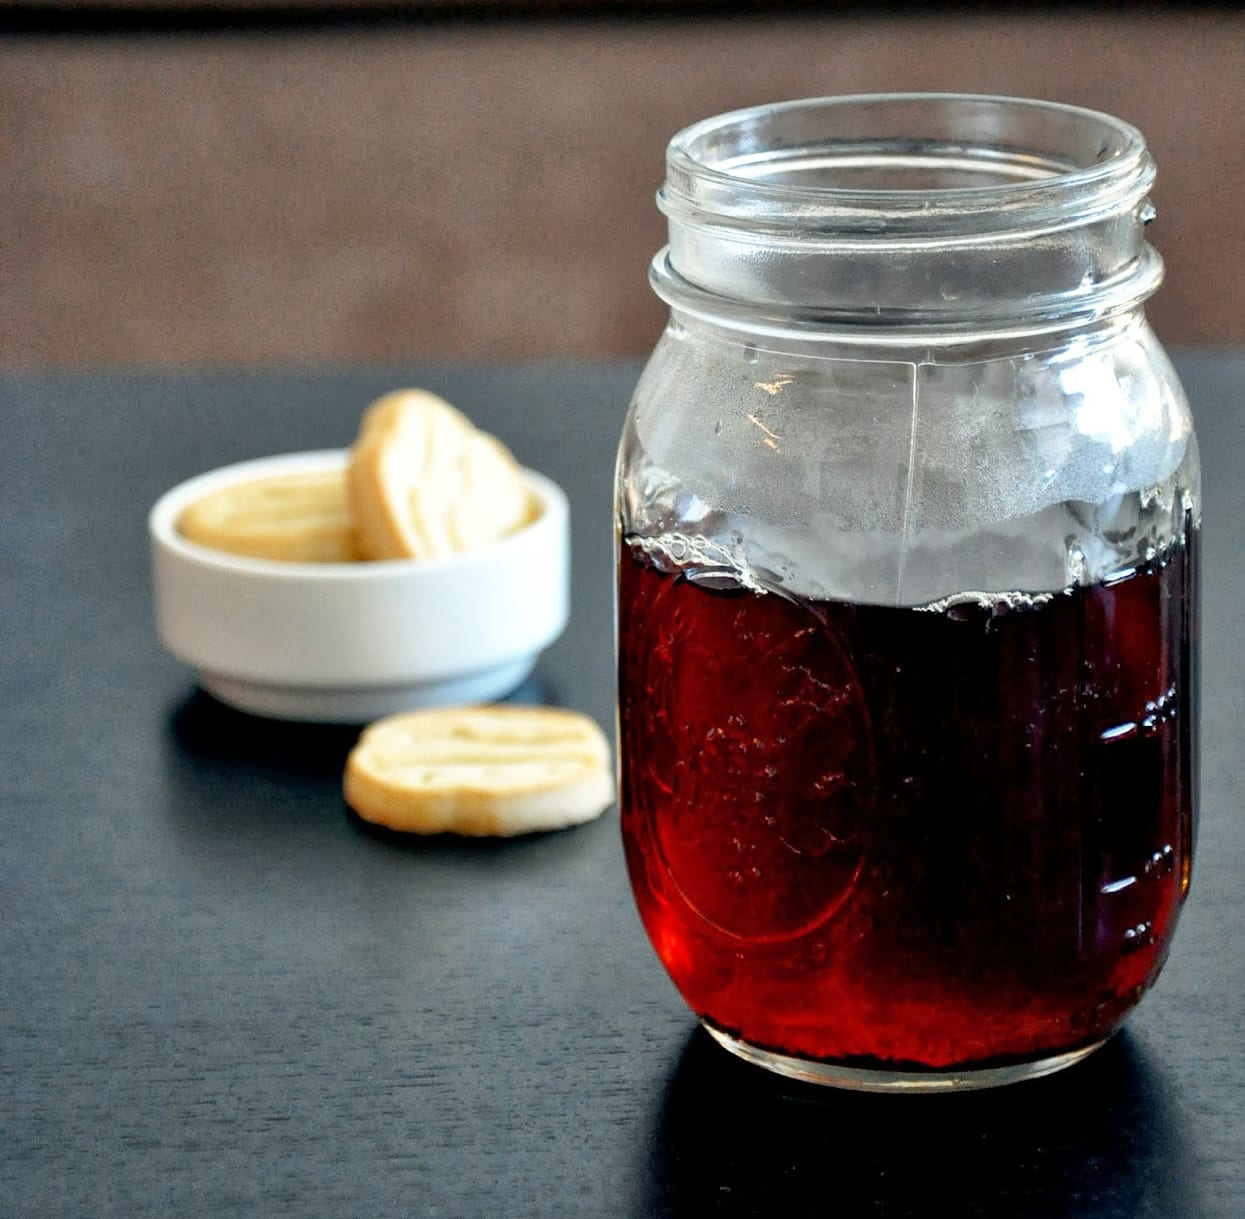 Ginger and Dates Tea